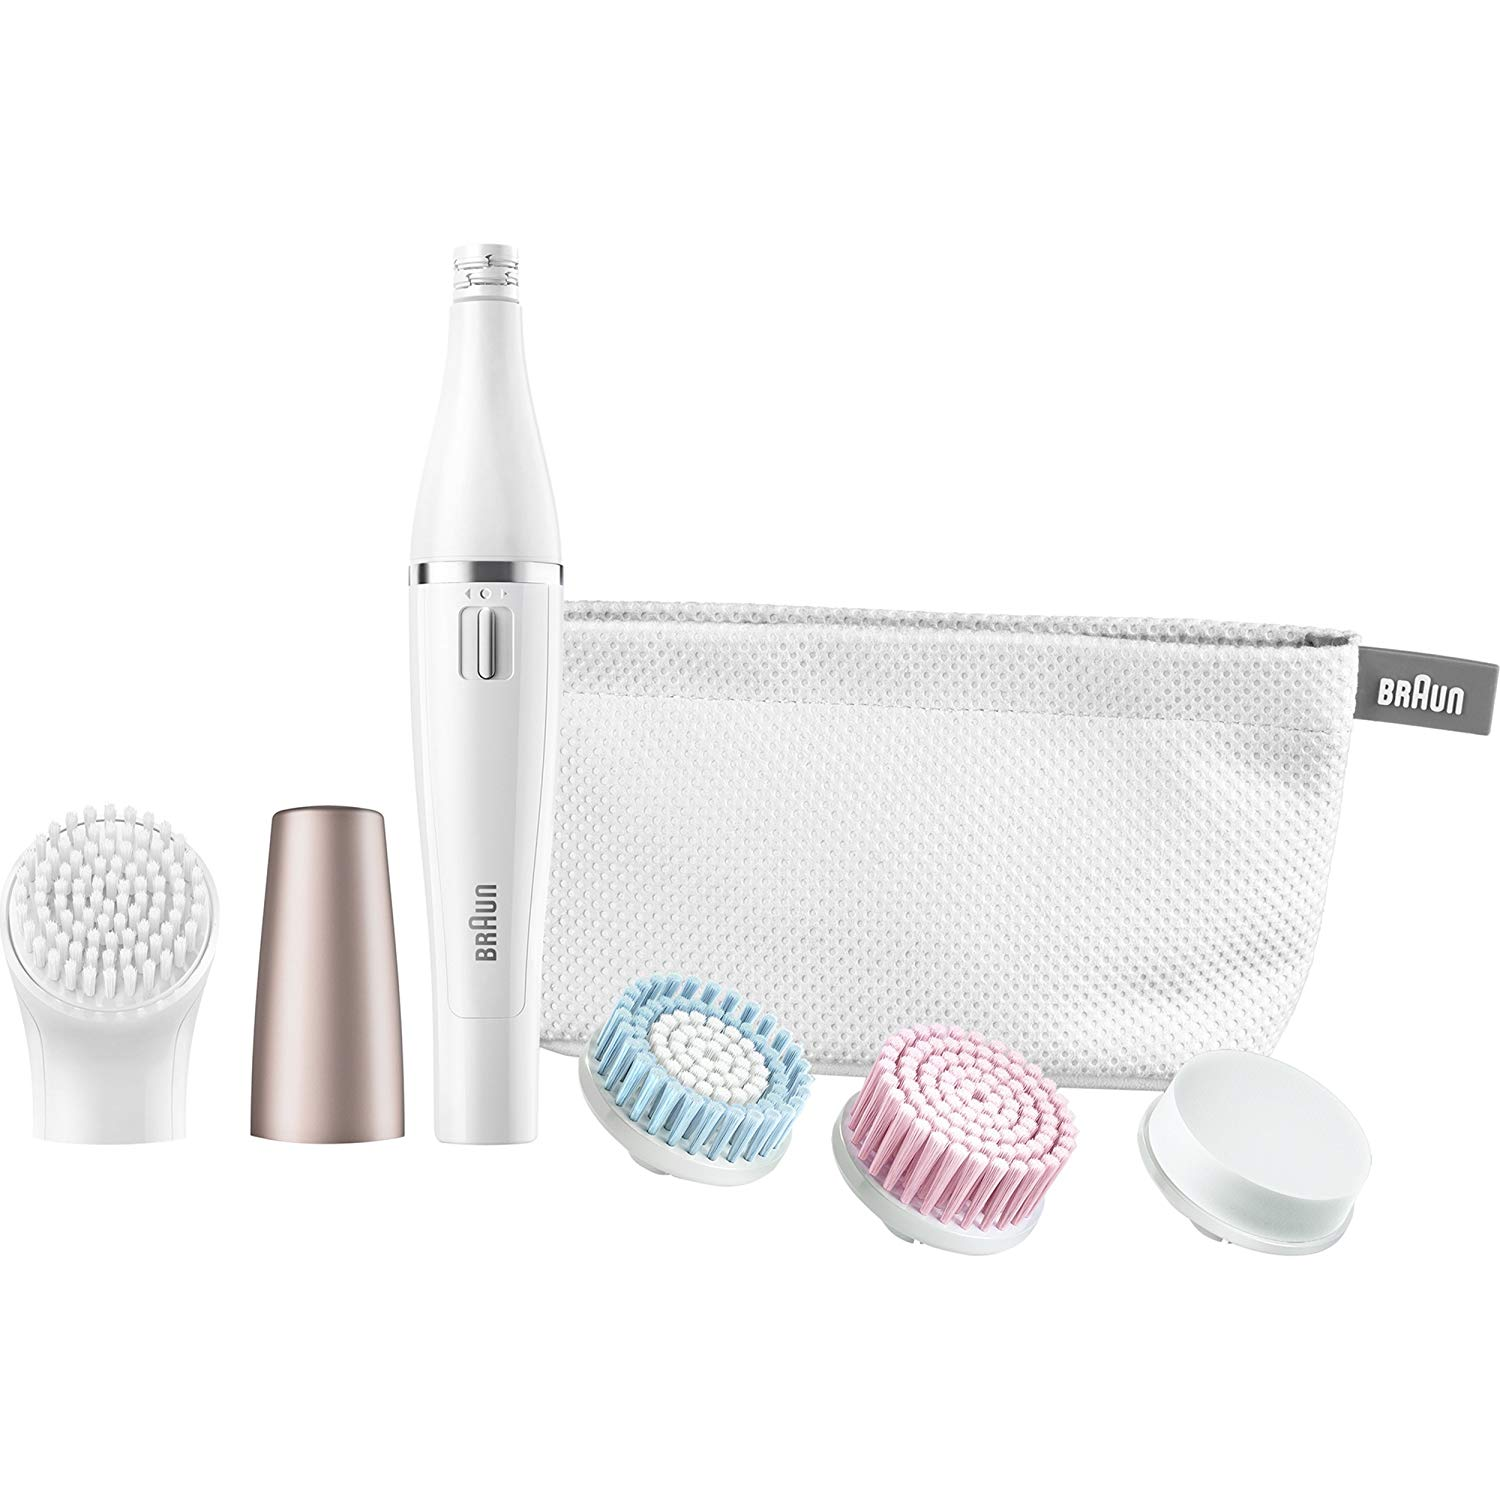 Braun Face Epilator Review 2020